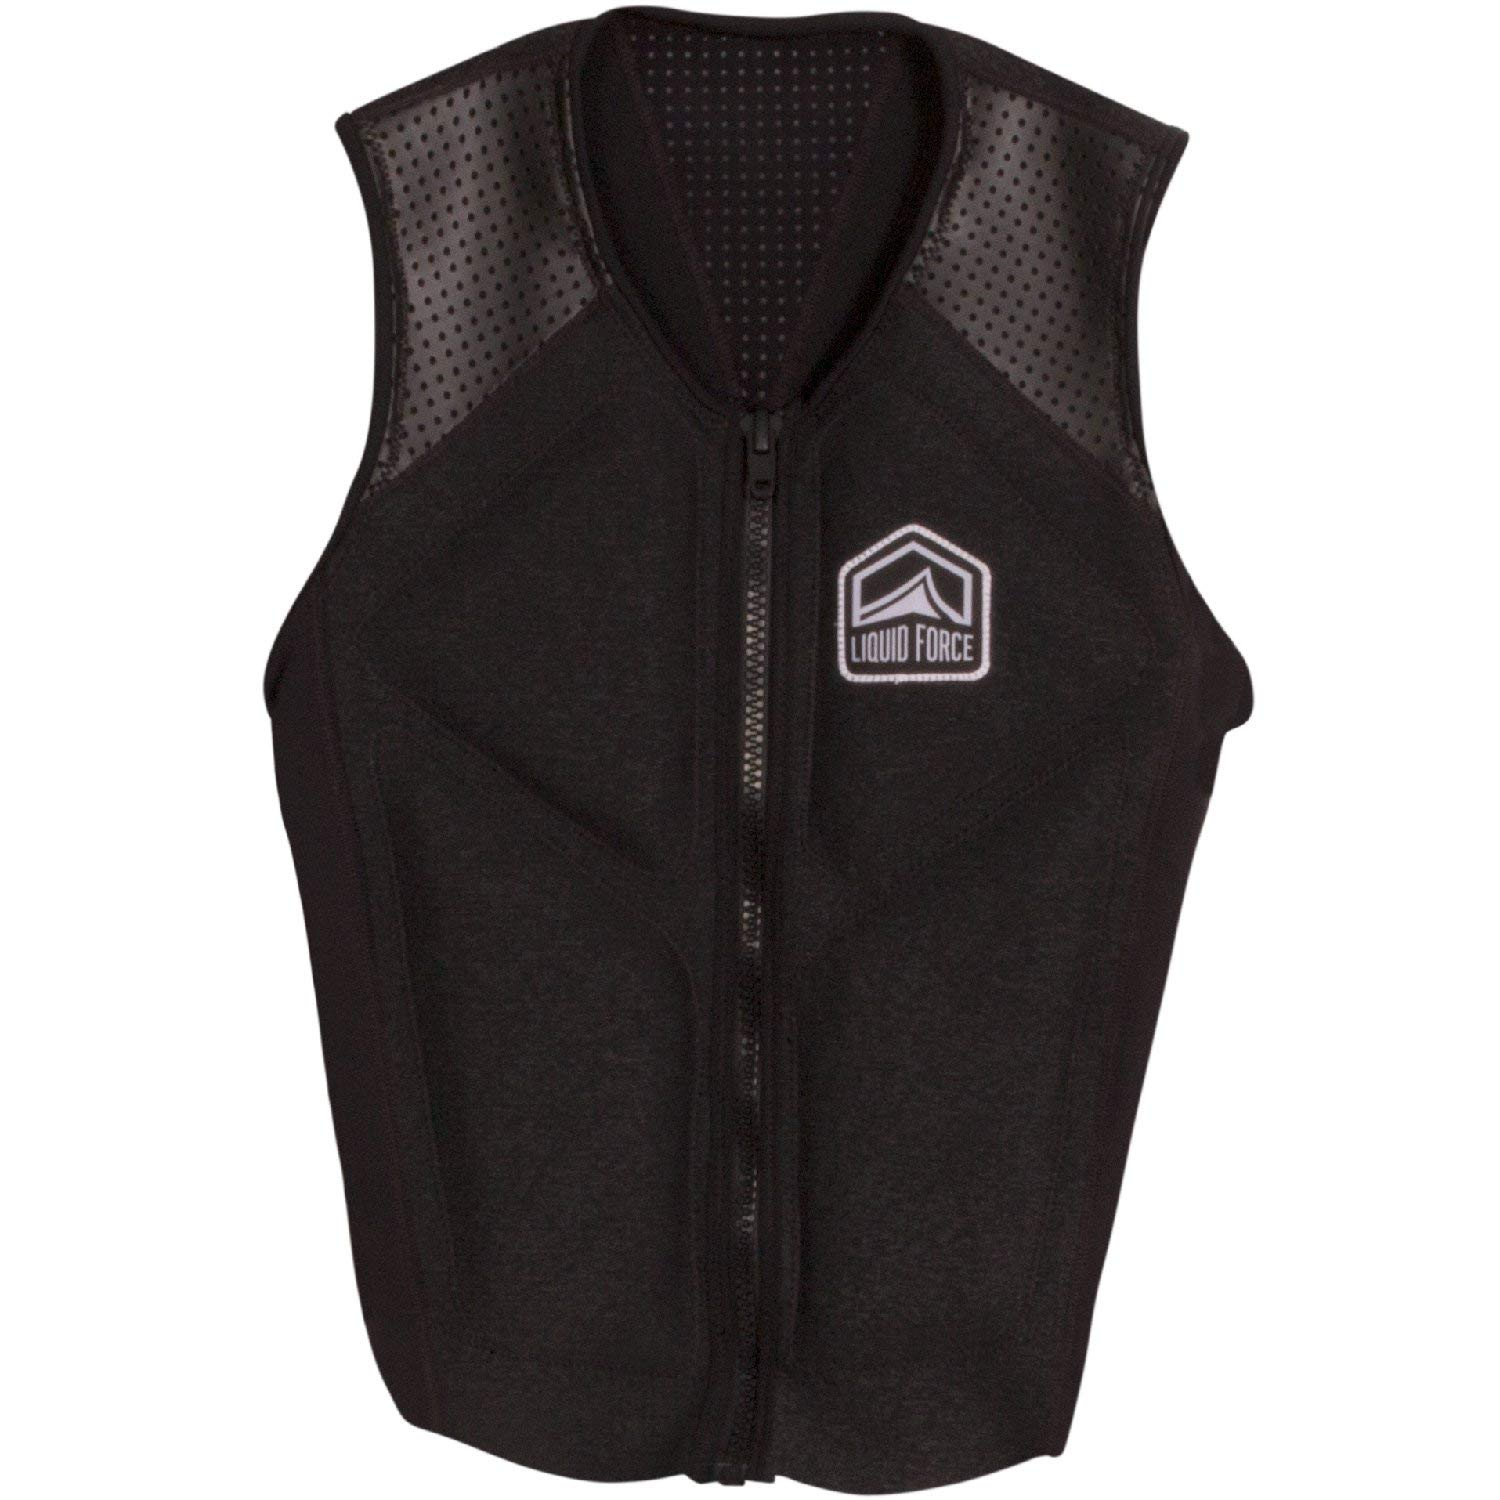 Liquid Force Watson Competition Life Jacket by Liquid Force